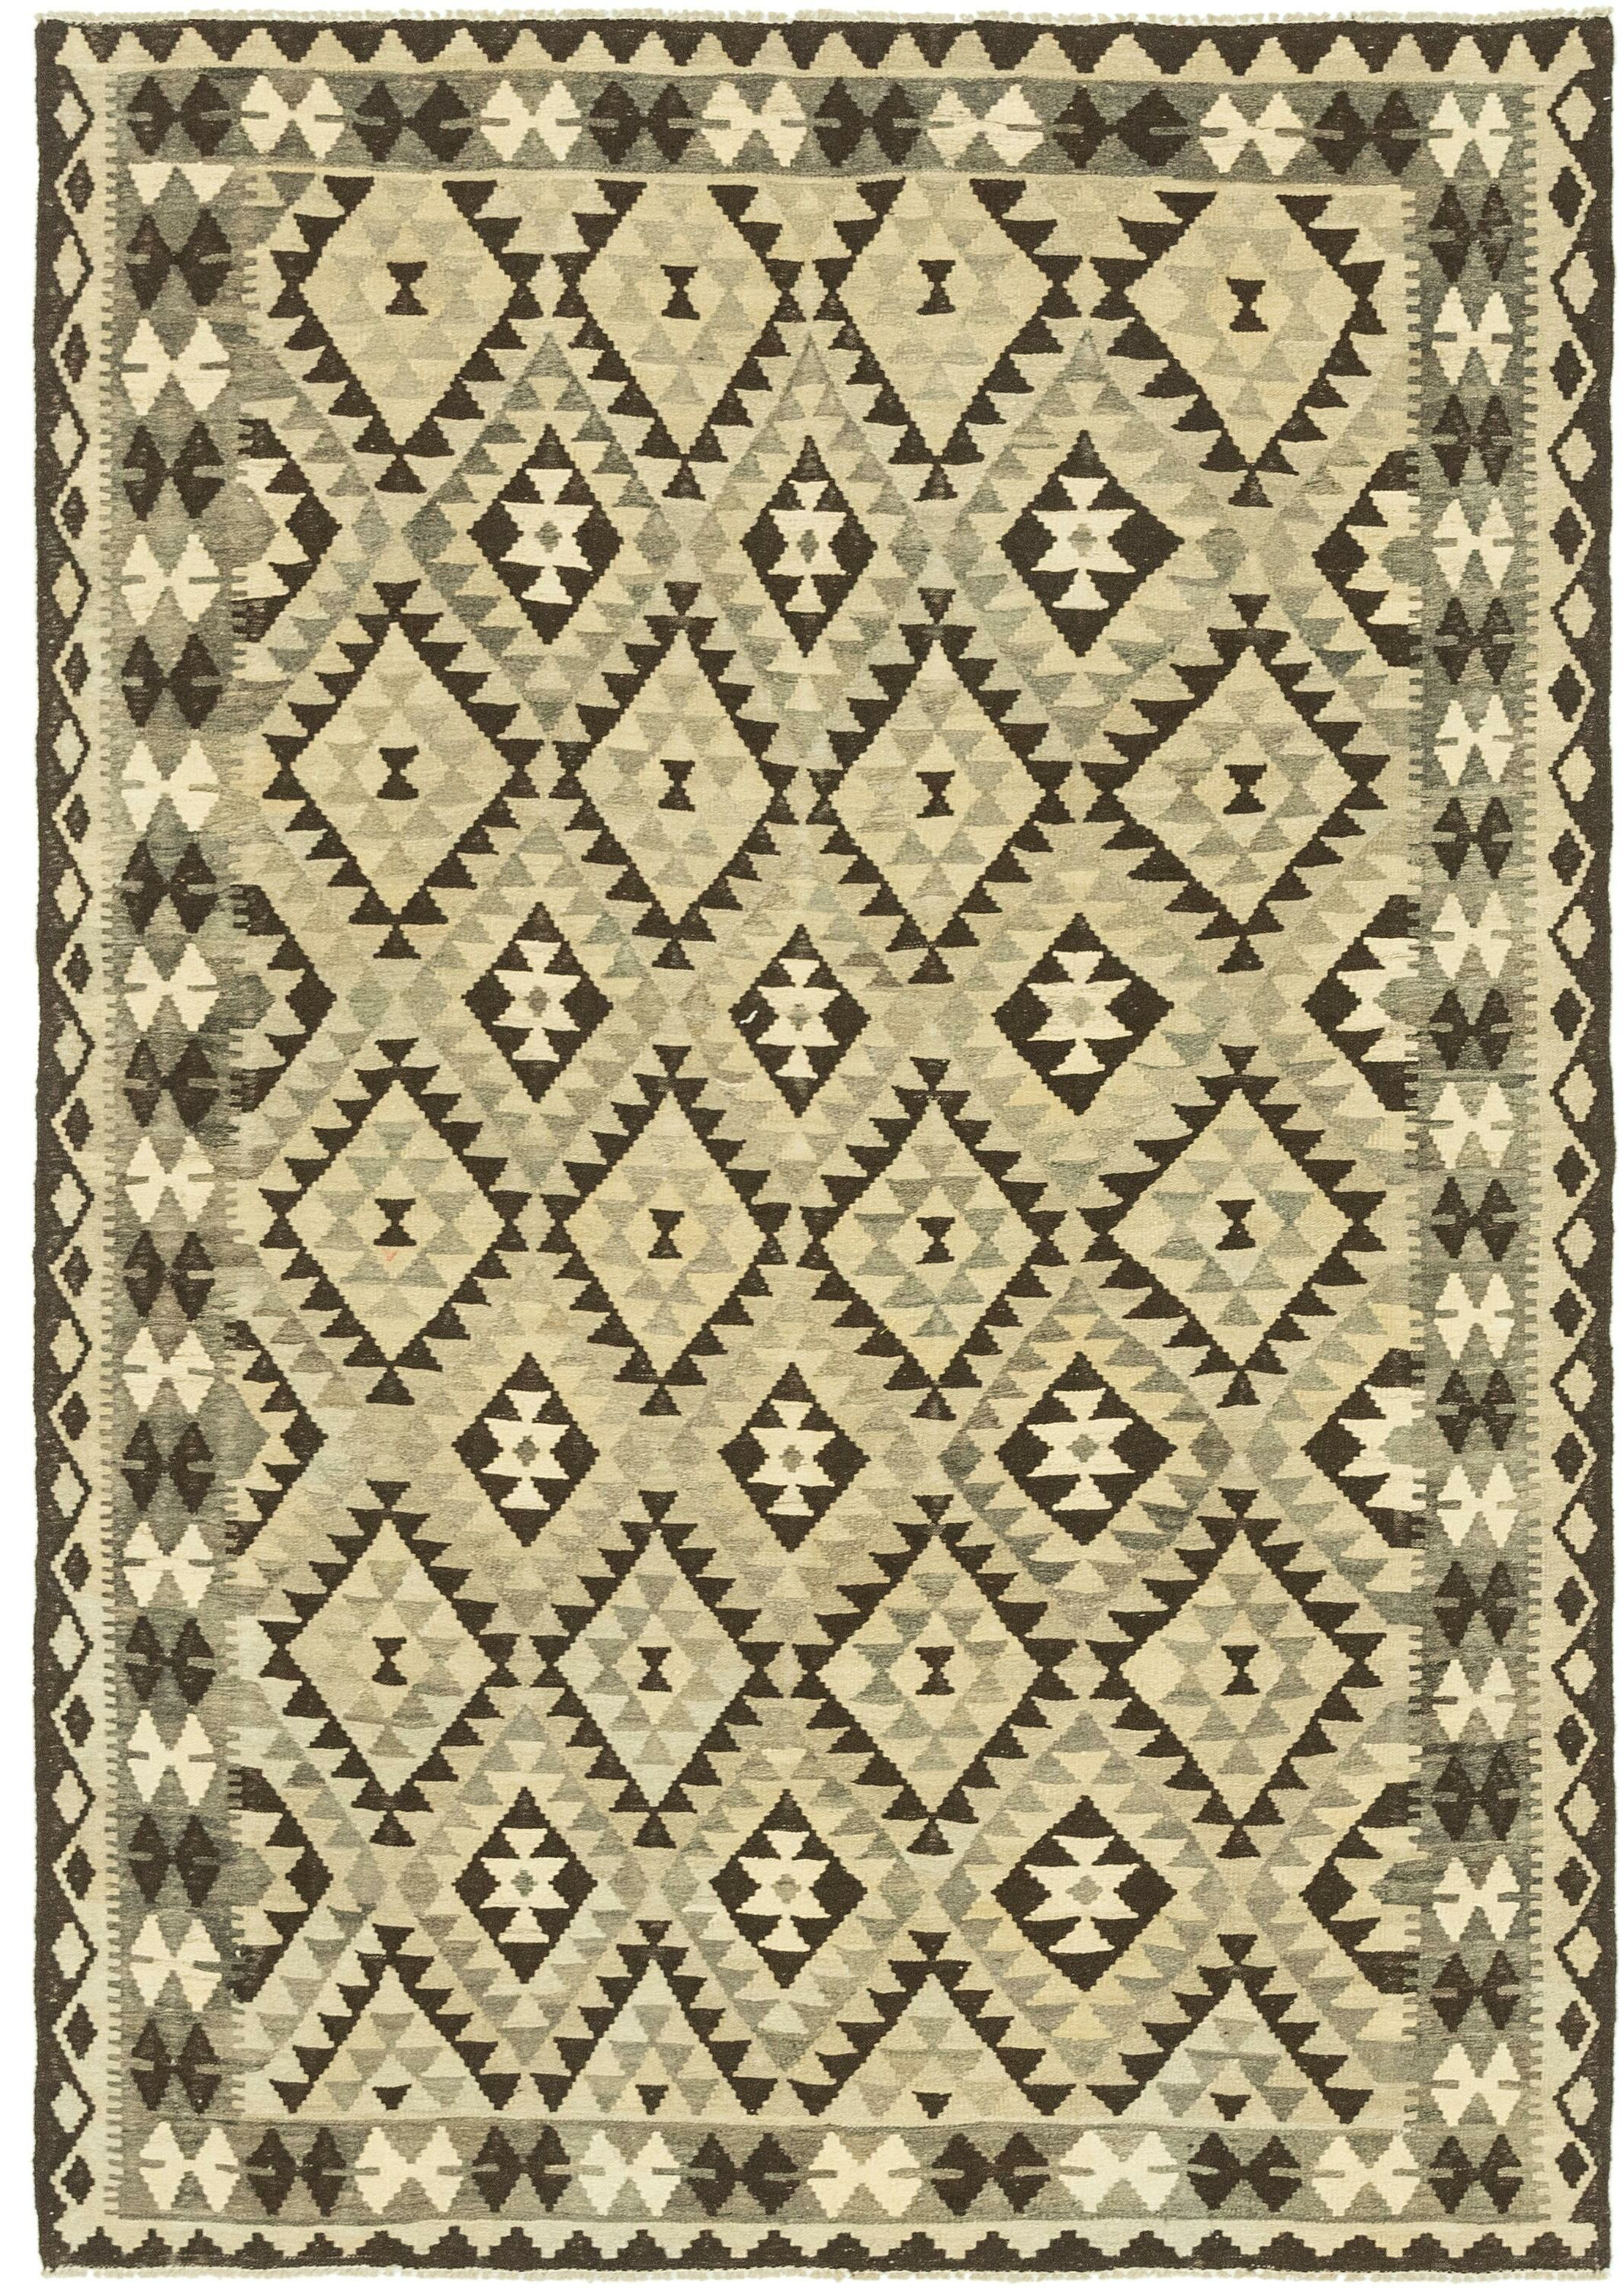 One-of-a-Kind Lorain Hand-Knotted Wool 5'9